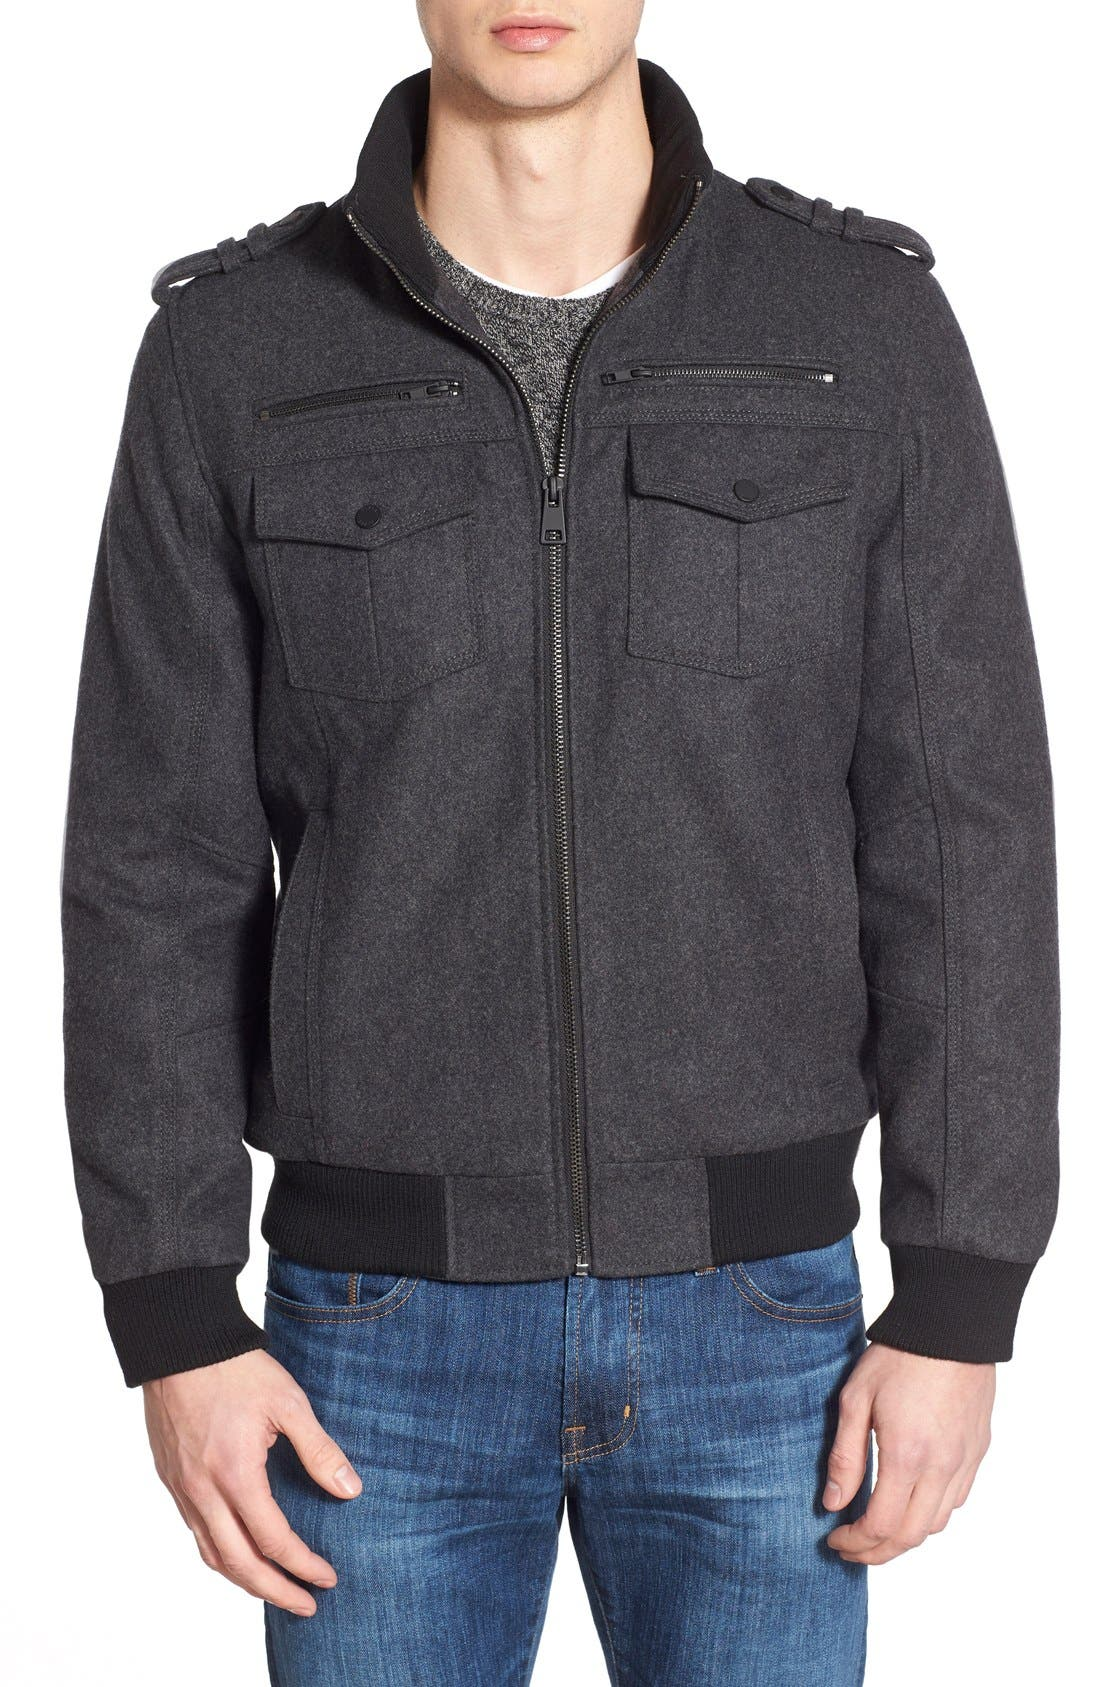 Wool Blend Bomber Jacket,                             Main thumbnail 1, color,                             Charcoal